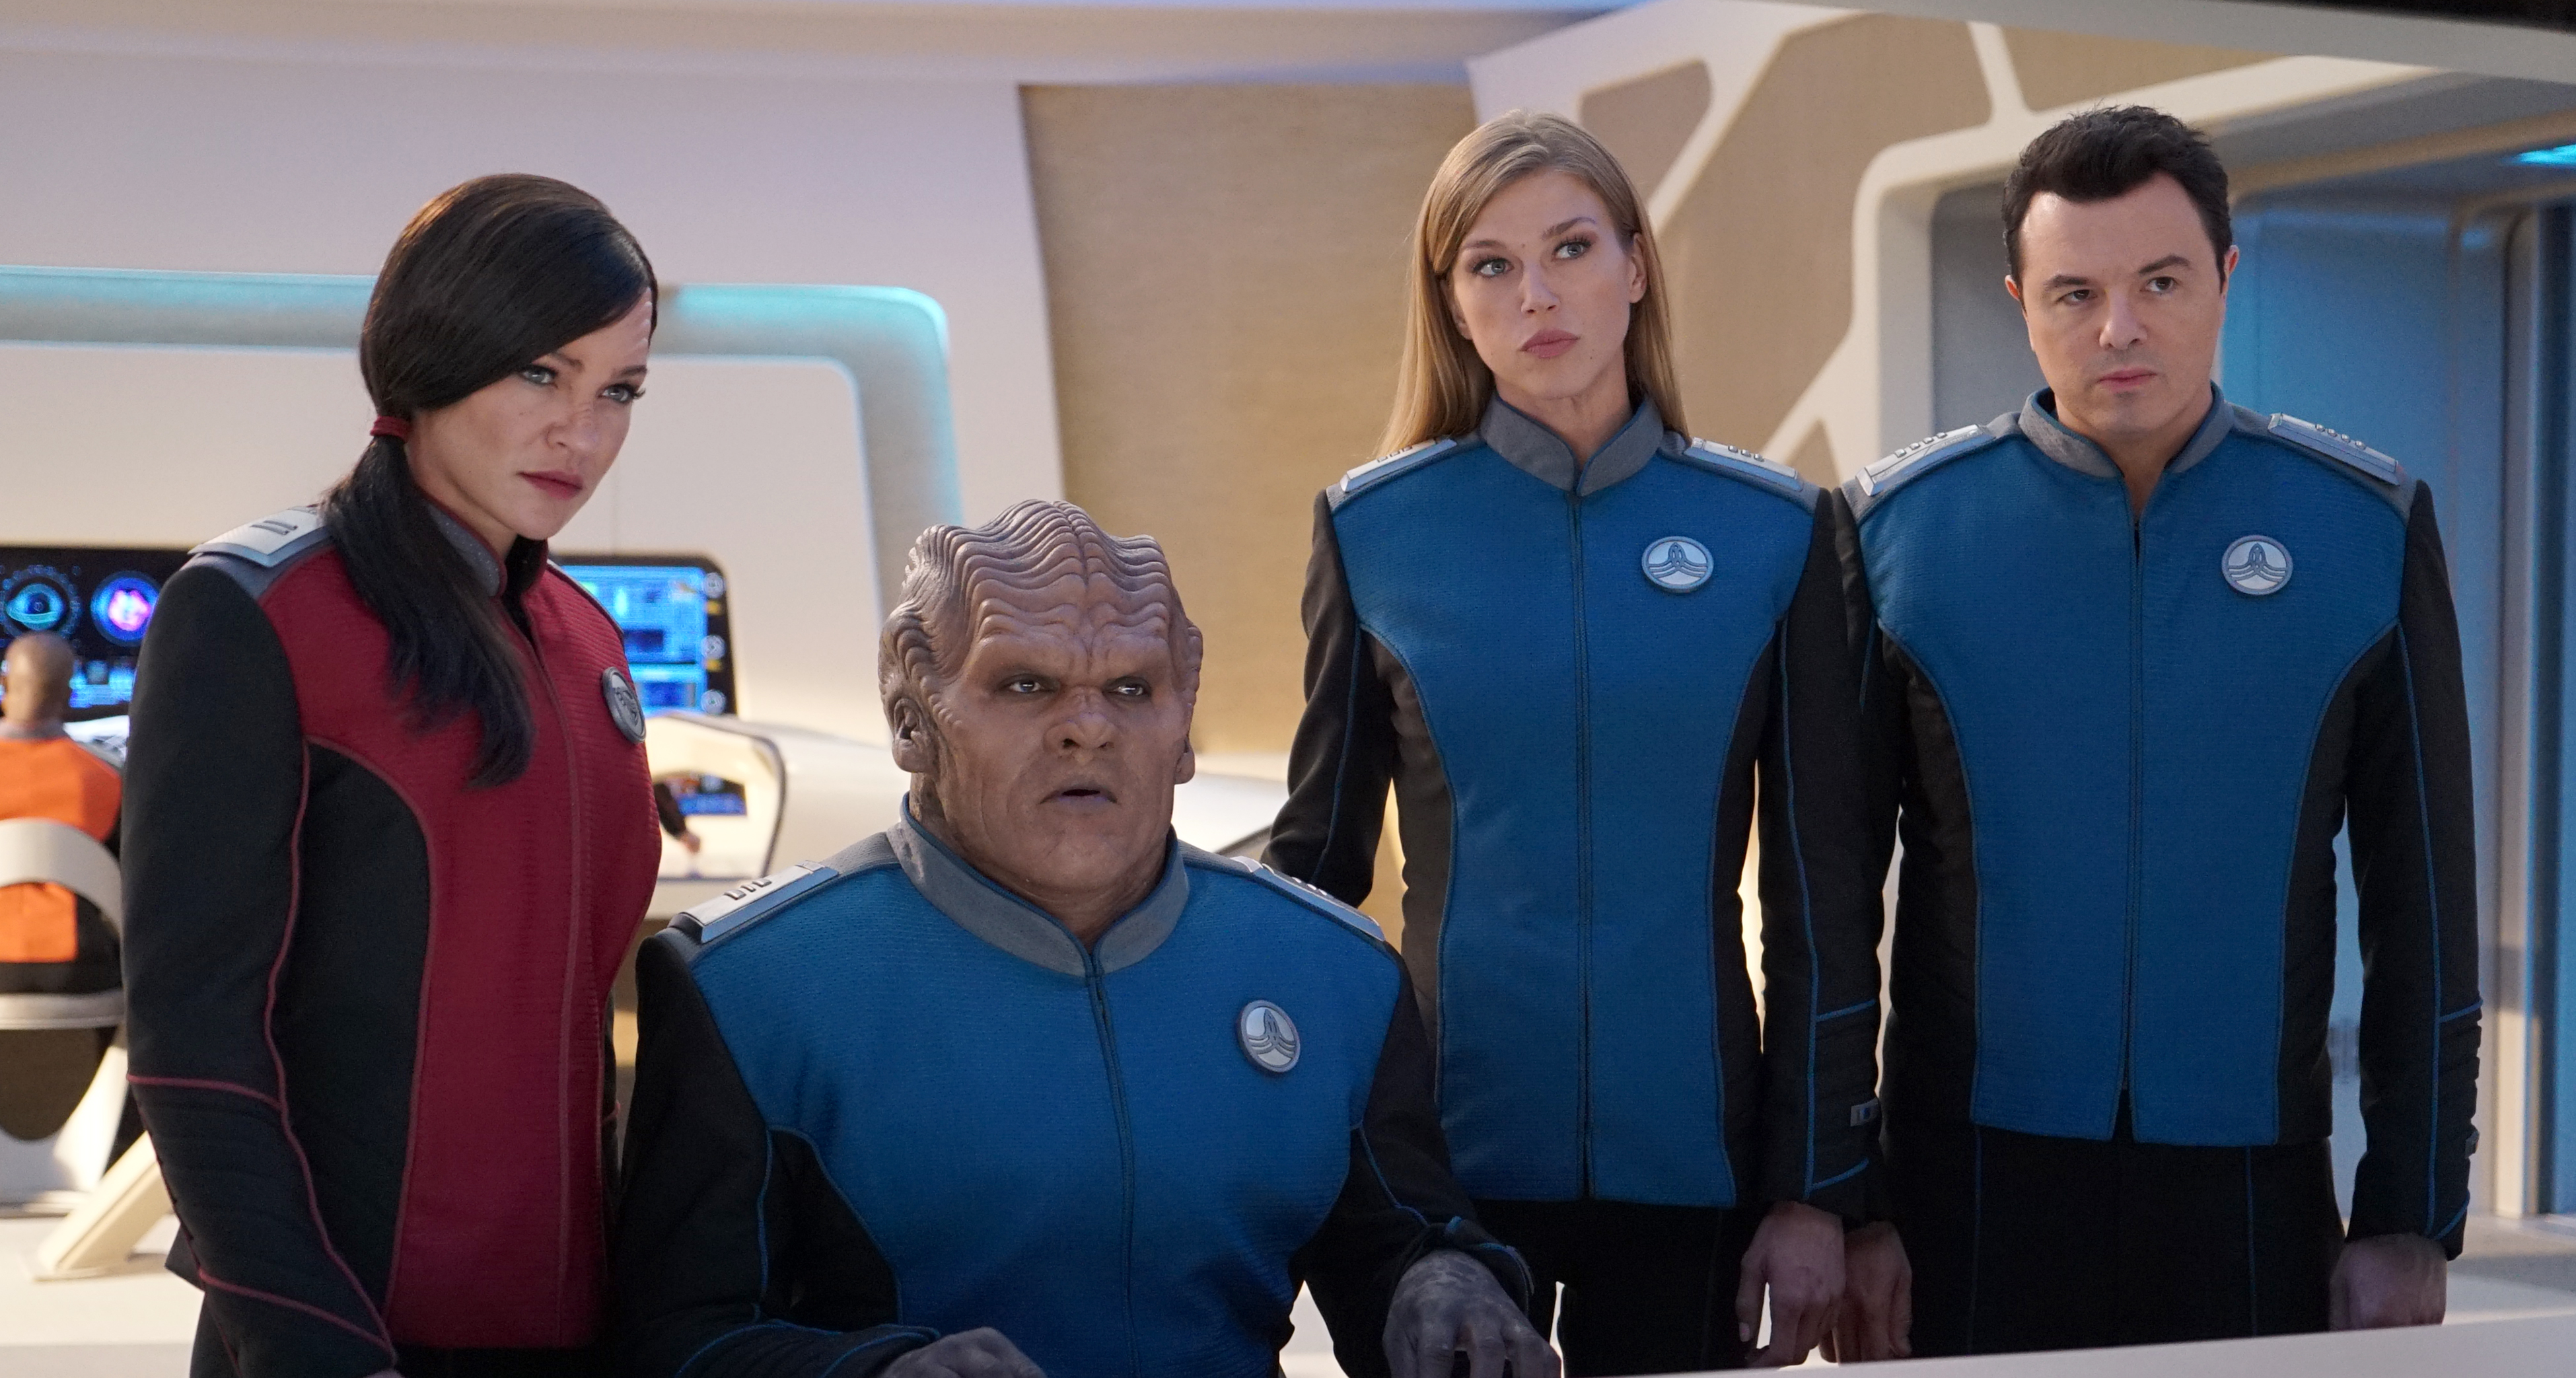 Seth MacFarlane, Peter Macon, Jessica Szohr, and Adrianne Palicki in The Orville (2017)